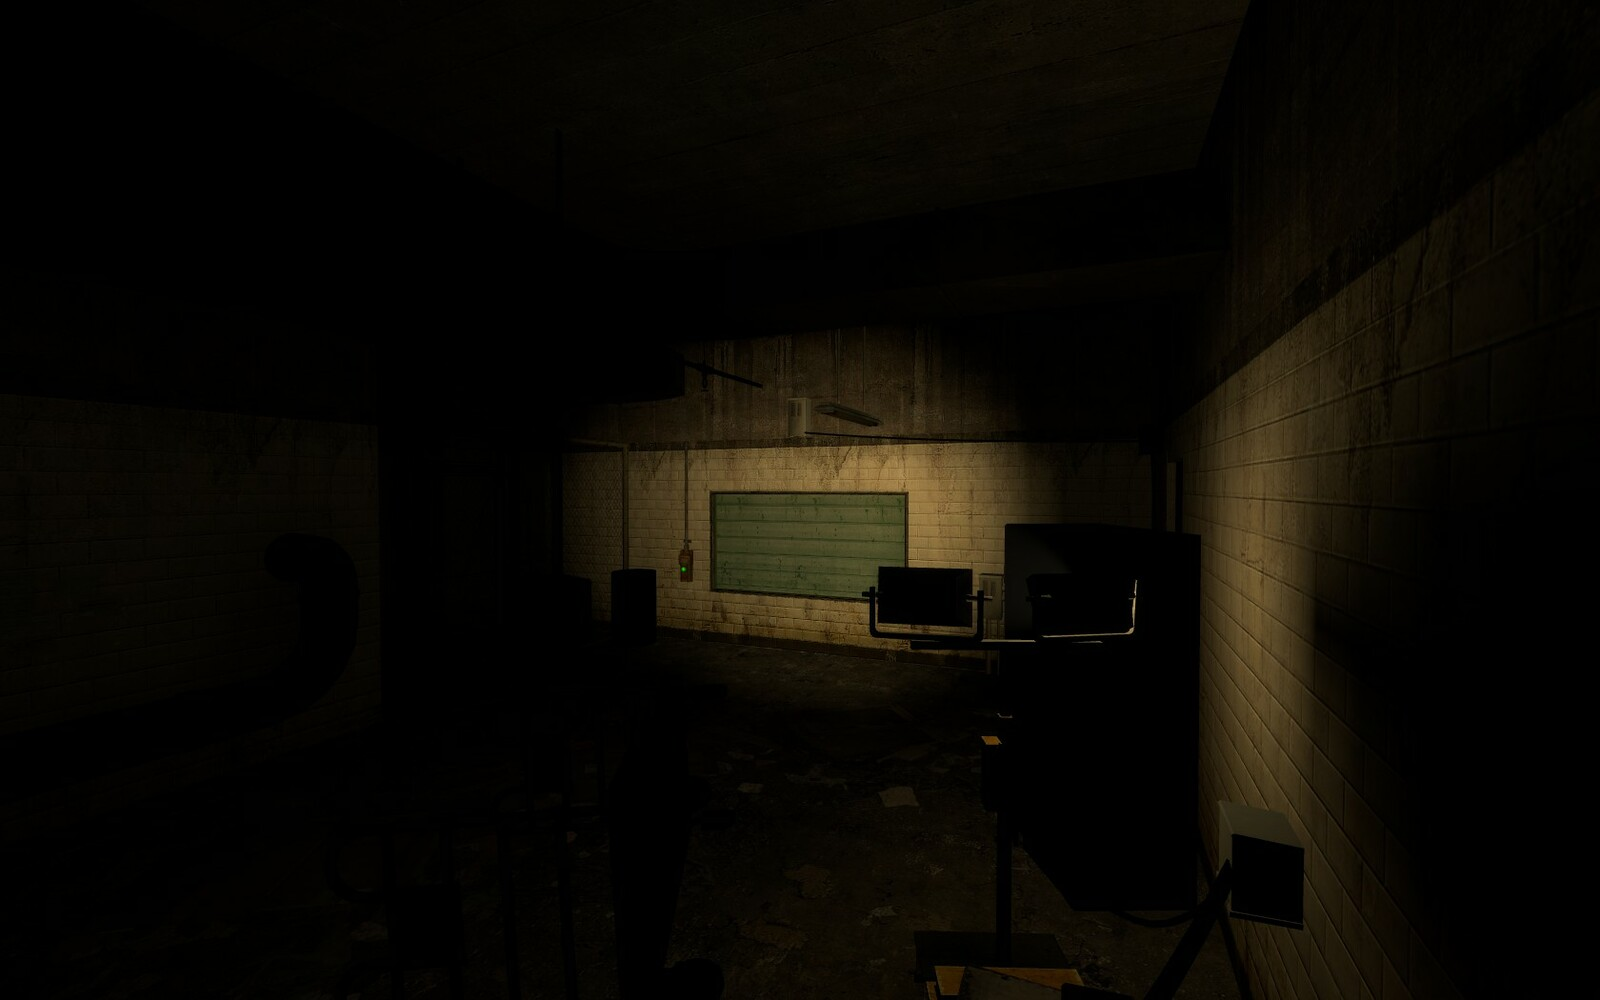 The player interacts with an NPC in this room. A spot light is shining on the window ti highlight its importance to the player.